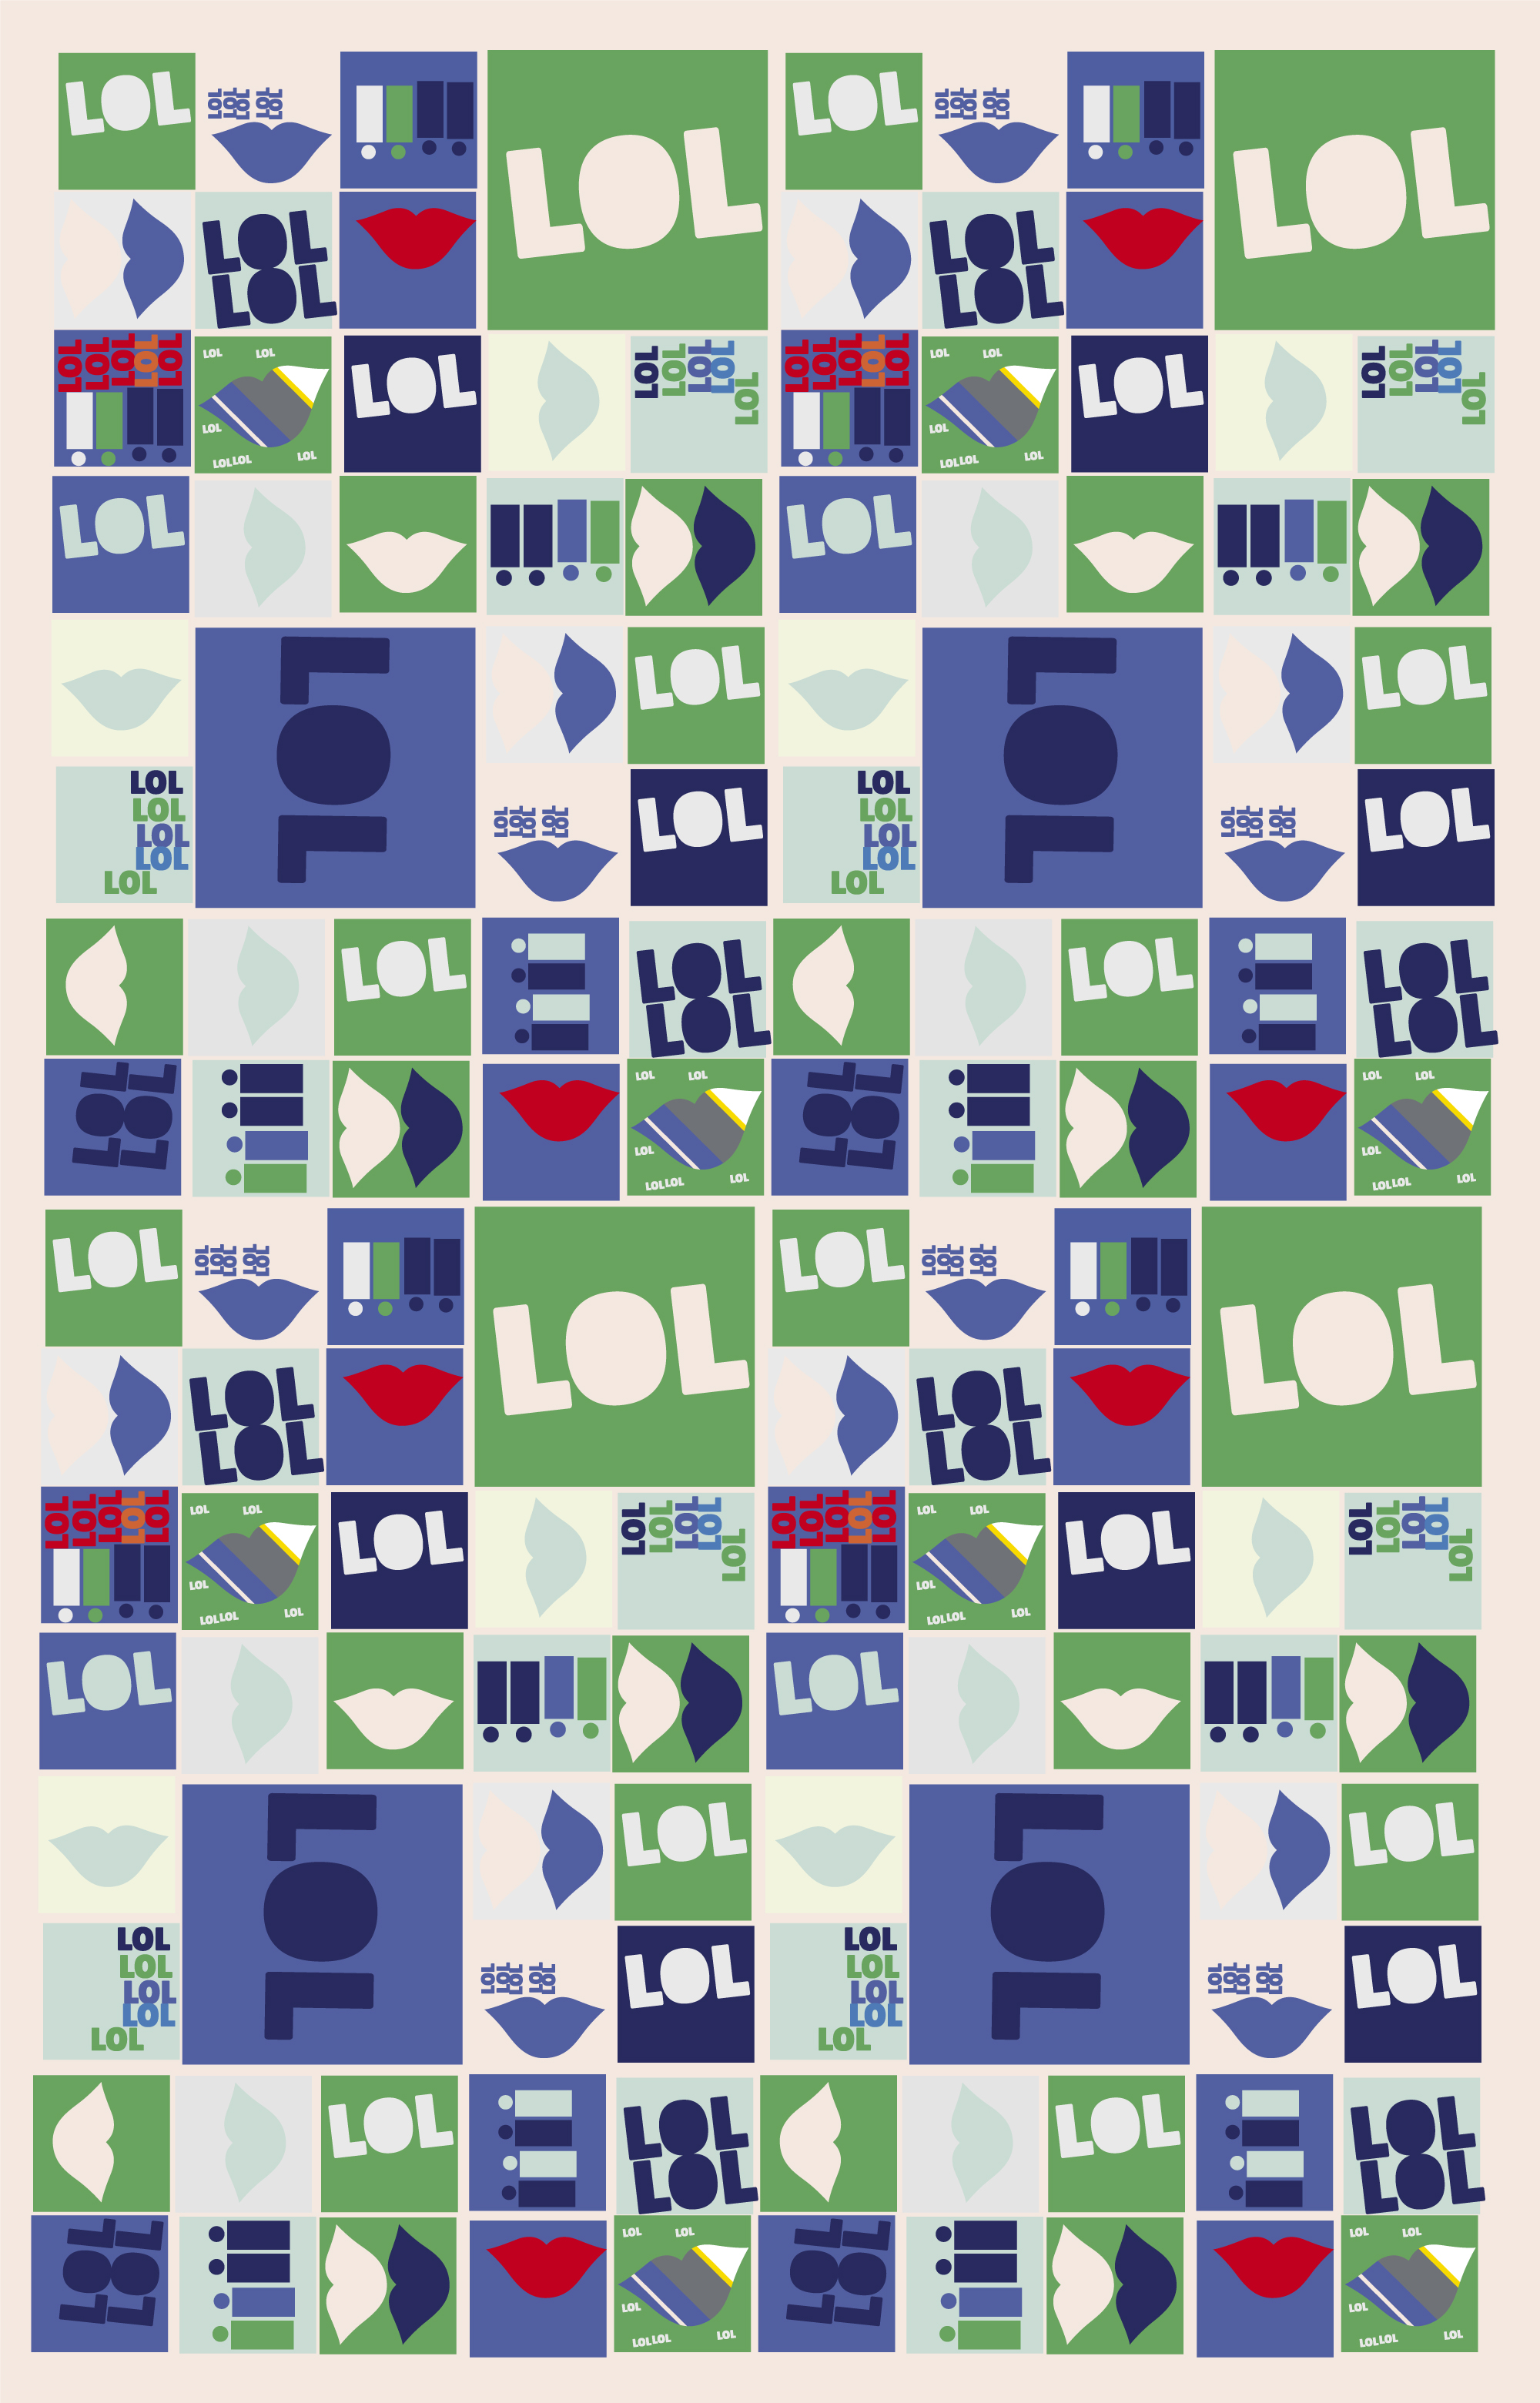 The LOL Pattern